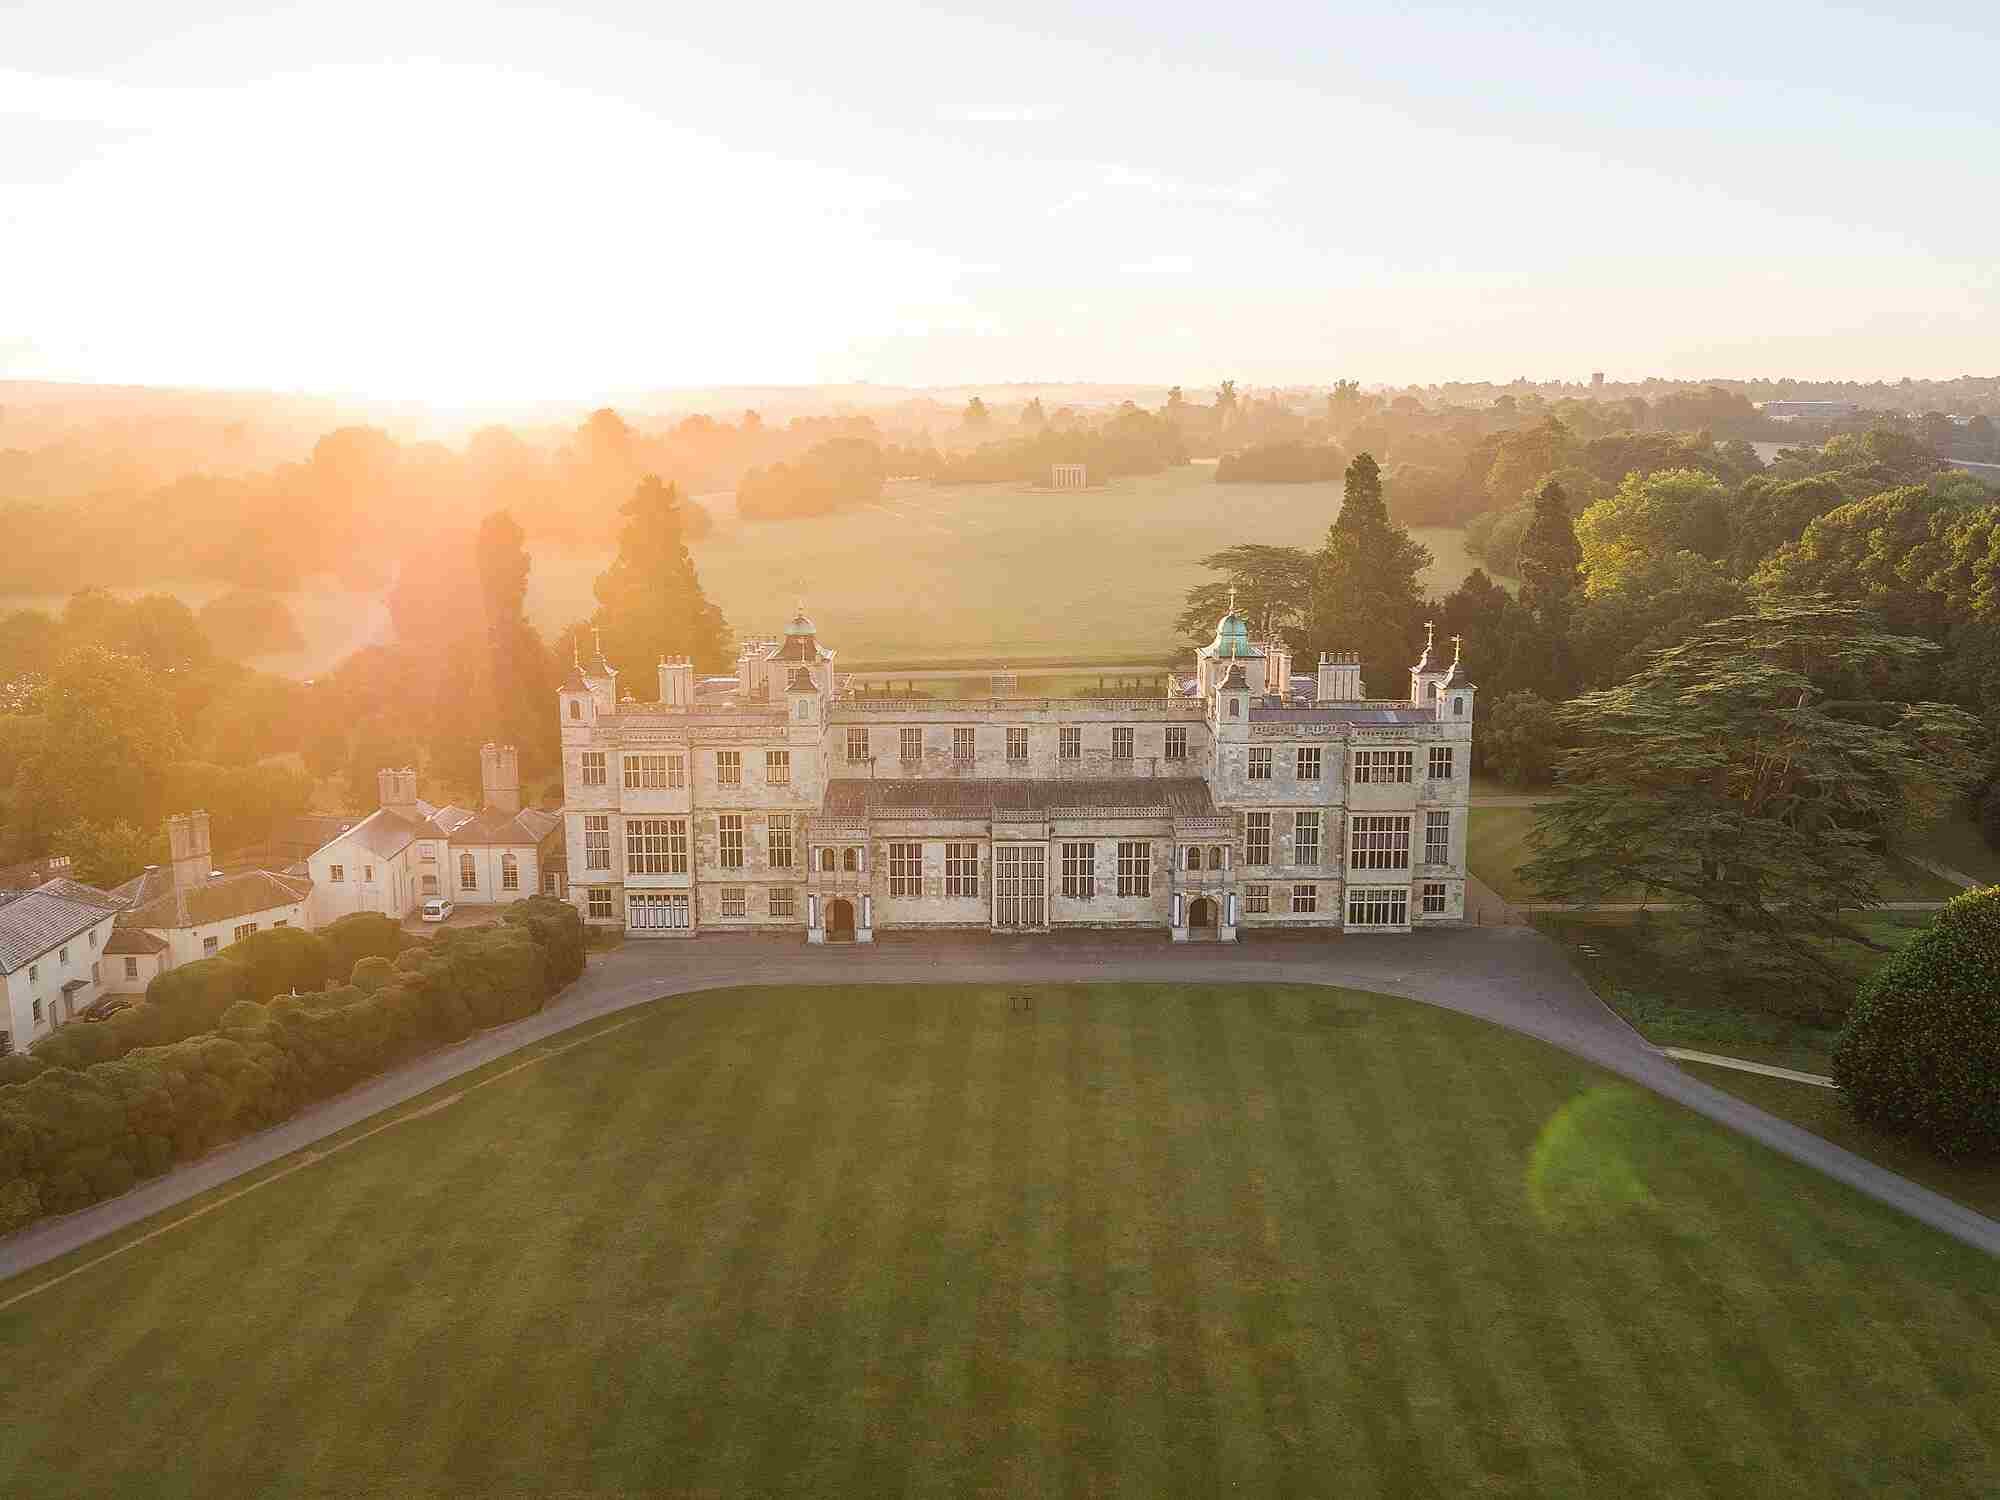 Audley End from the air